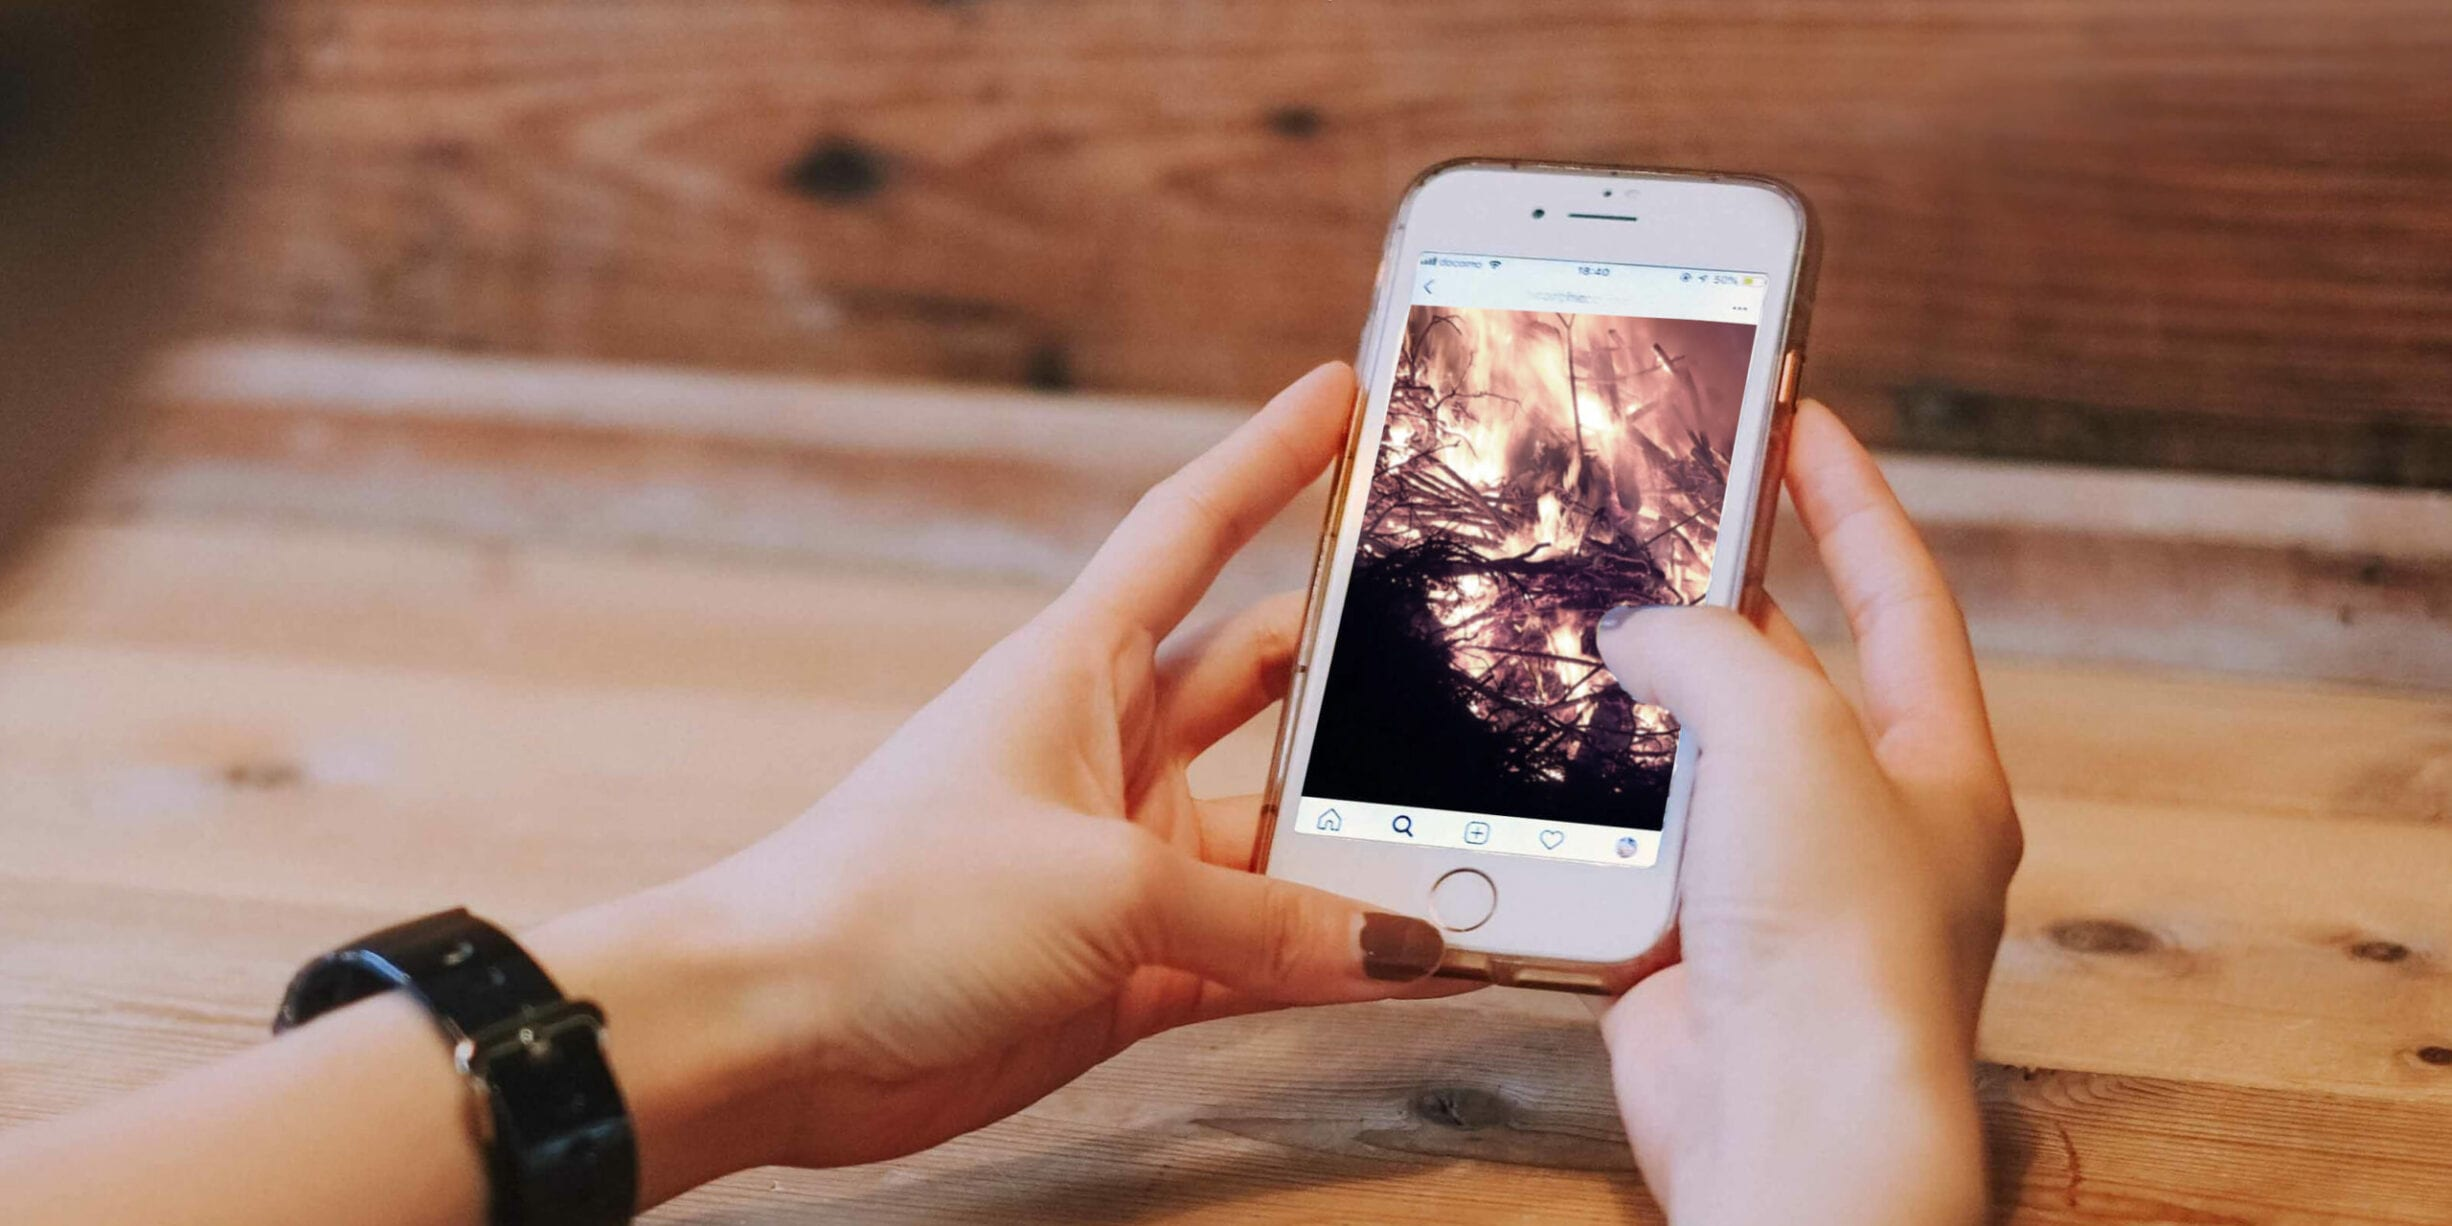 Woman looking at photo of fire on white iPhone